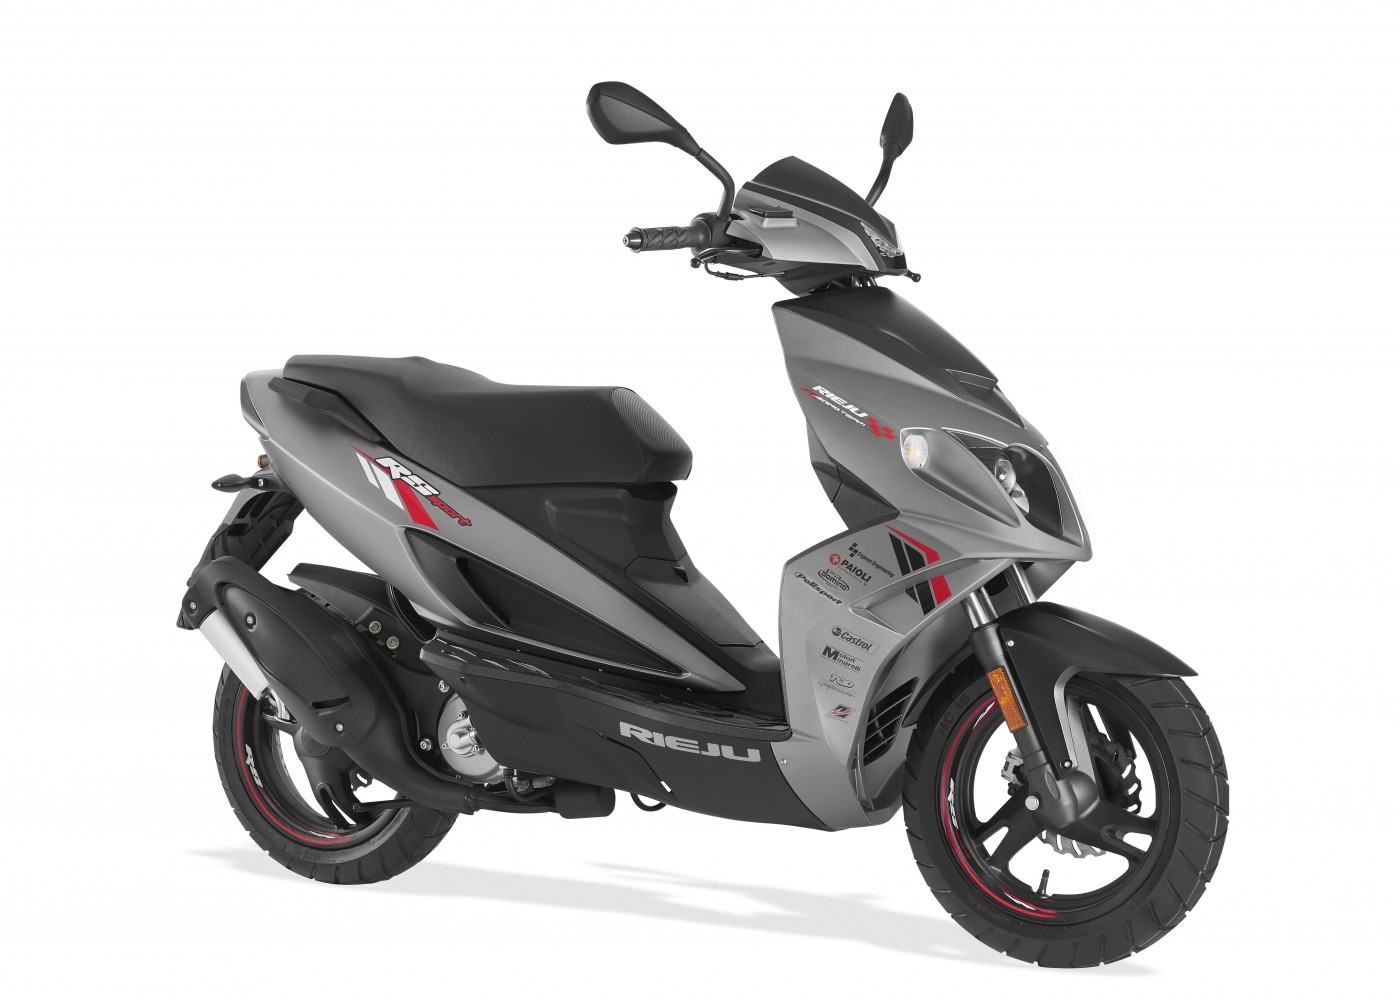 rieju rs sport 50 scooter 50cc lc motorcycle finance uk delivery. Black Bedroom Furniture Sets. Home Design Ideas